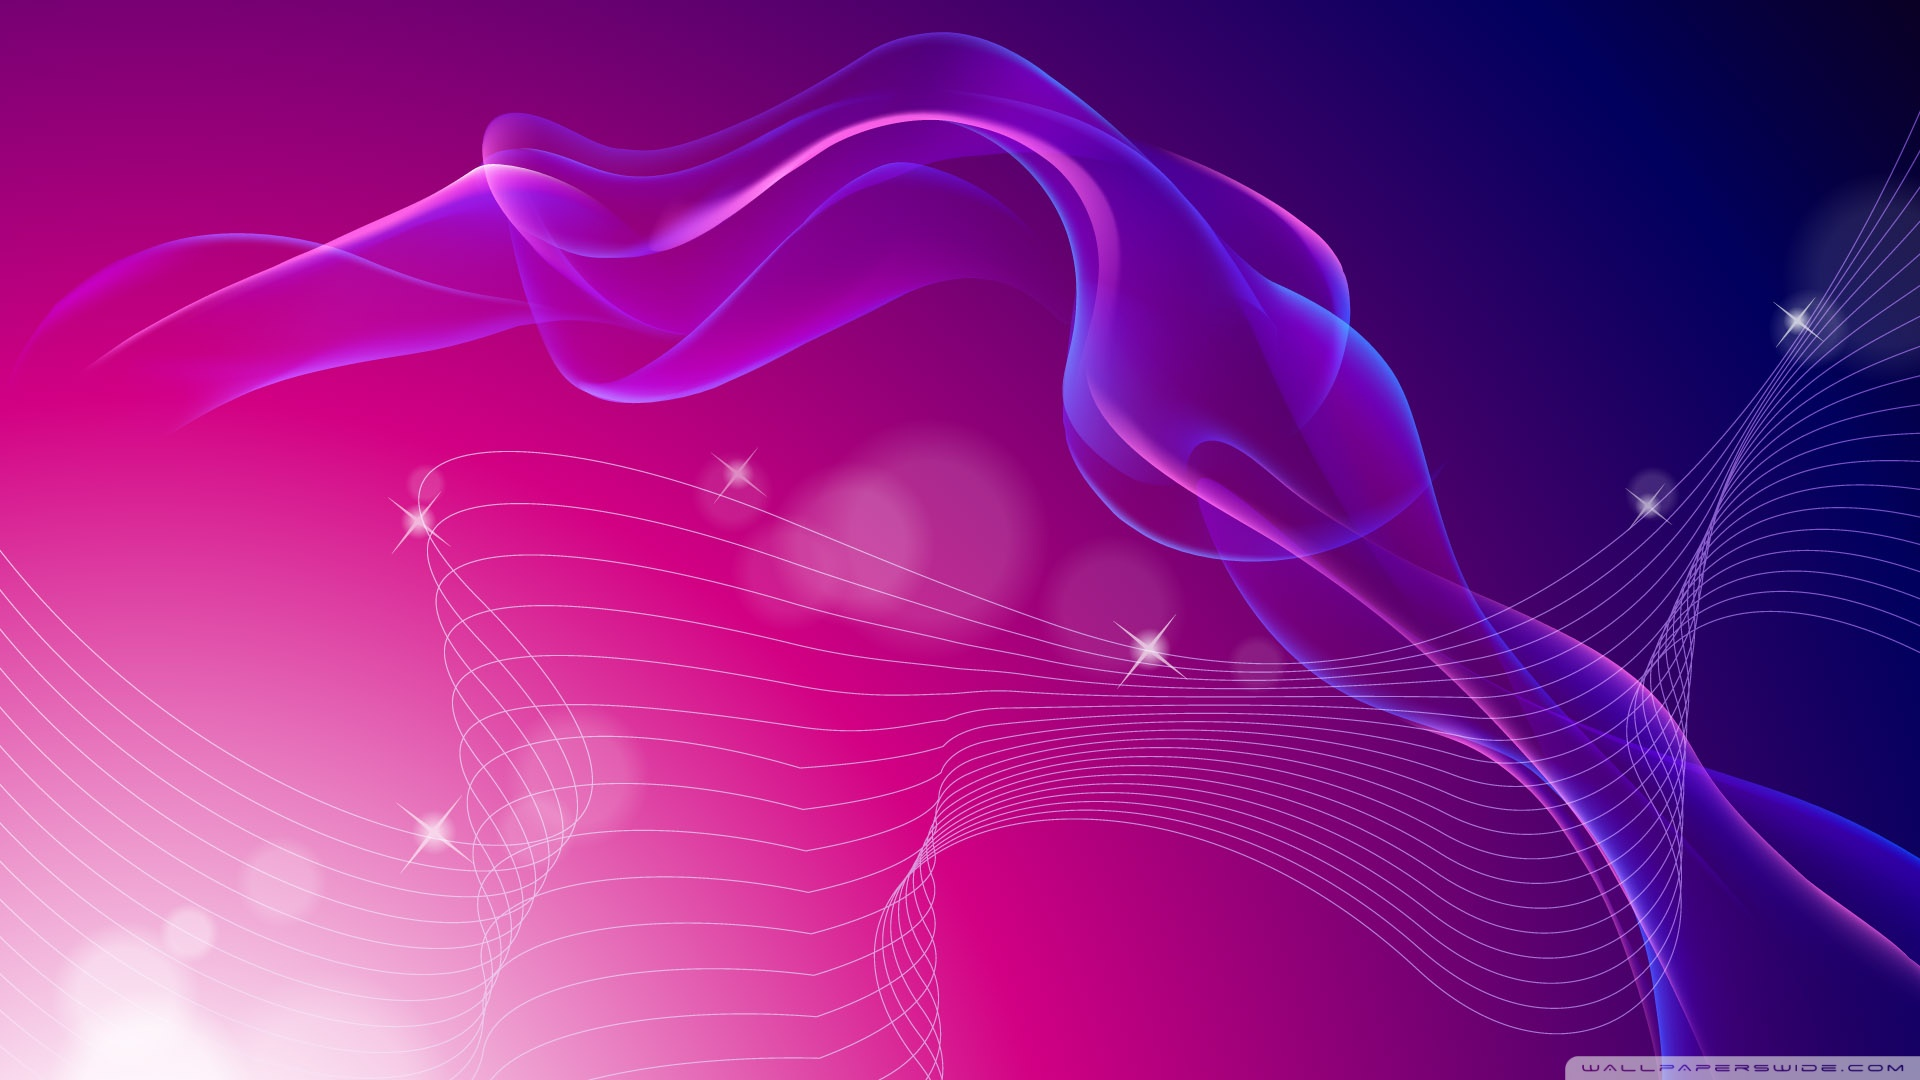 Abstract Aero Pink And Purple HD Desktop Wallpaper Widescreen High Purple Wallpaper